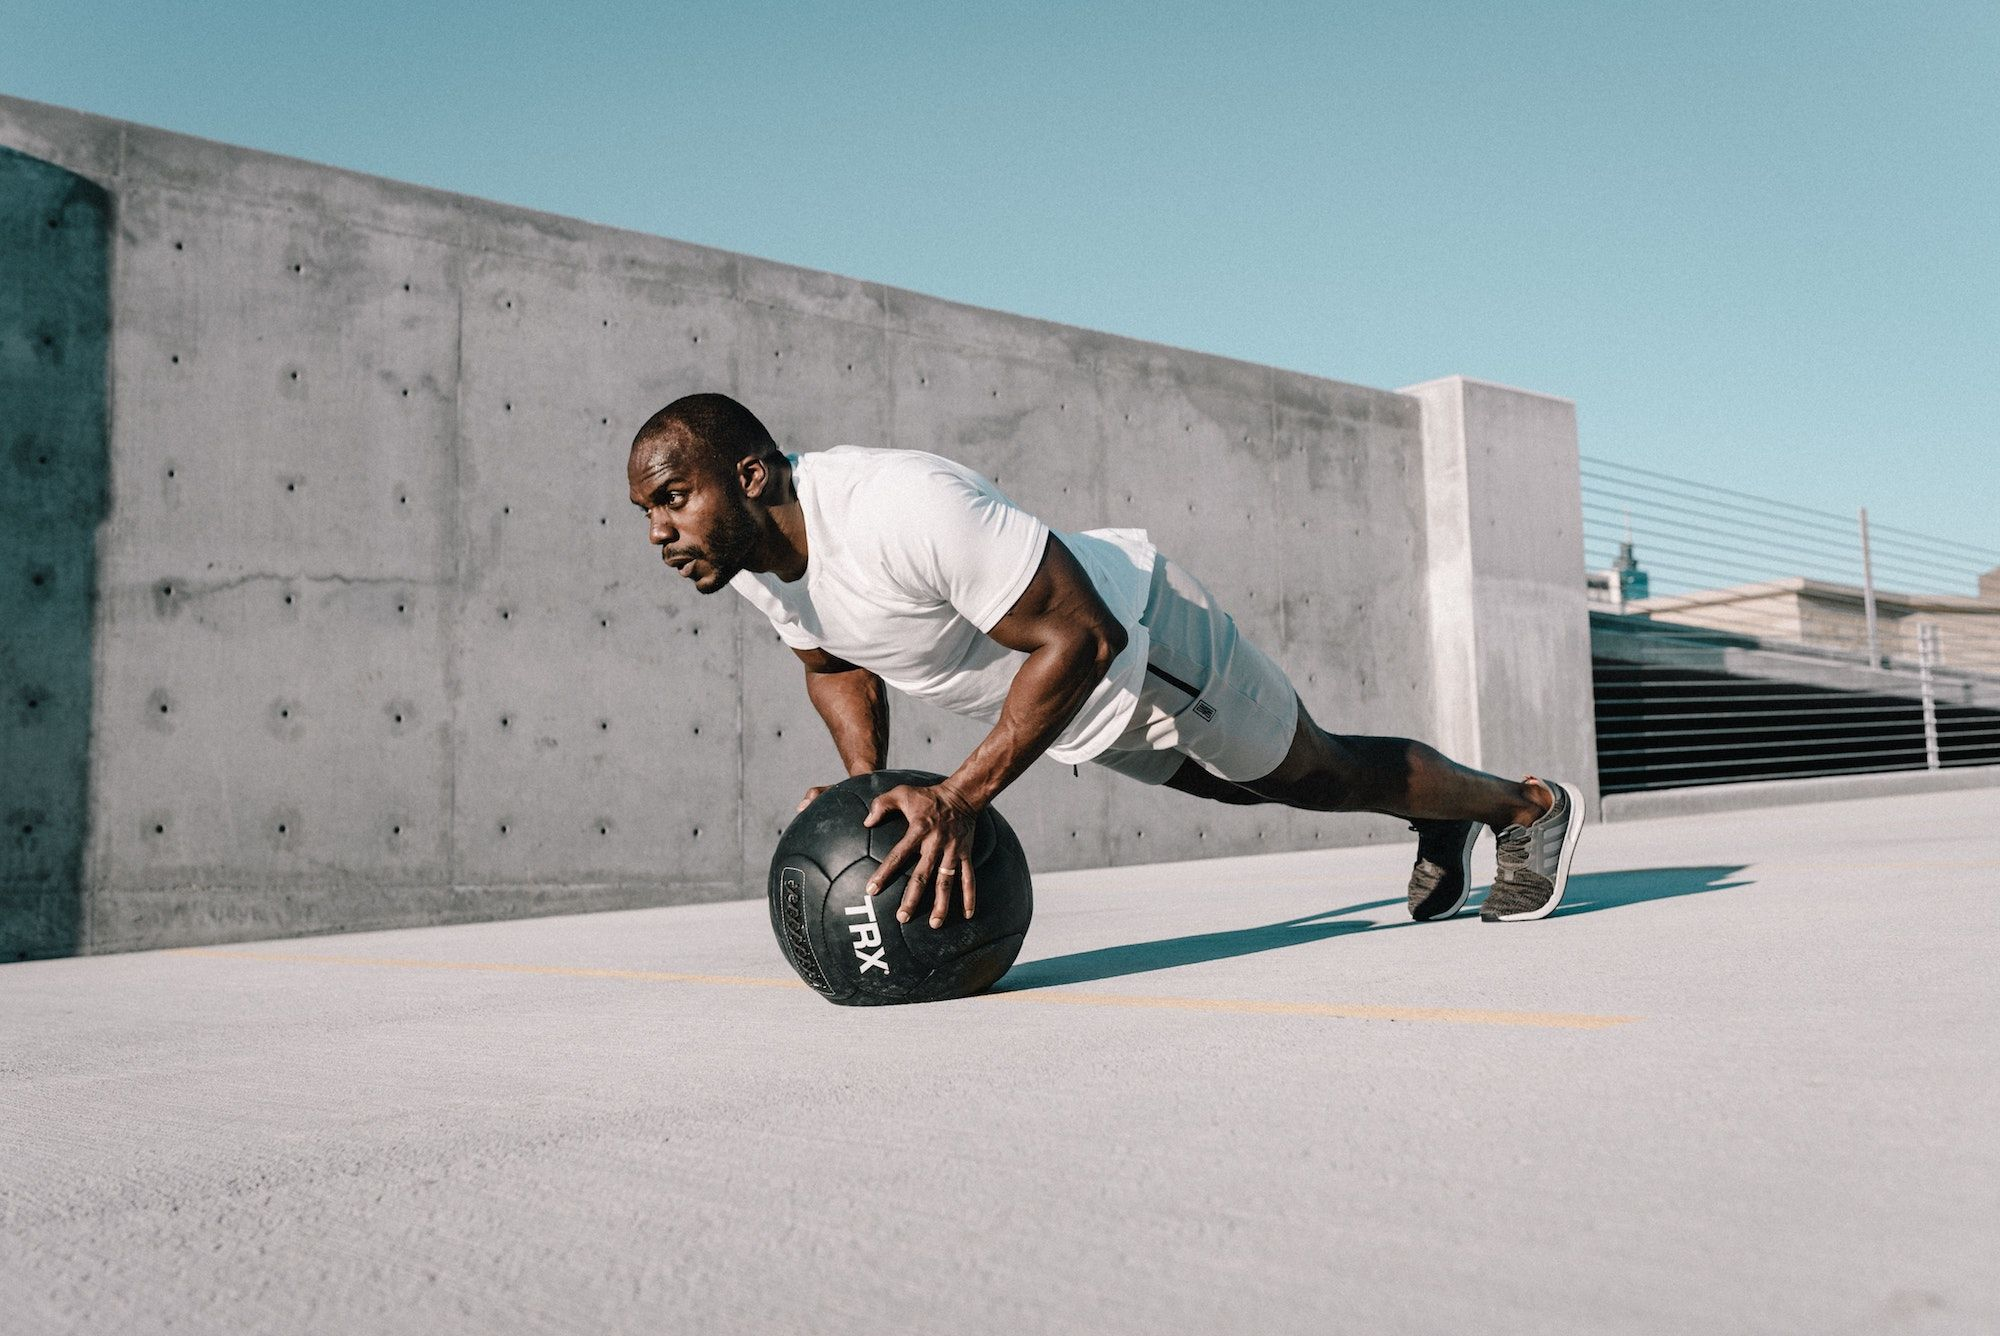 Why Excess High-Intensity Training May Be Doing More Harm Than Good